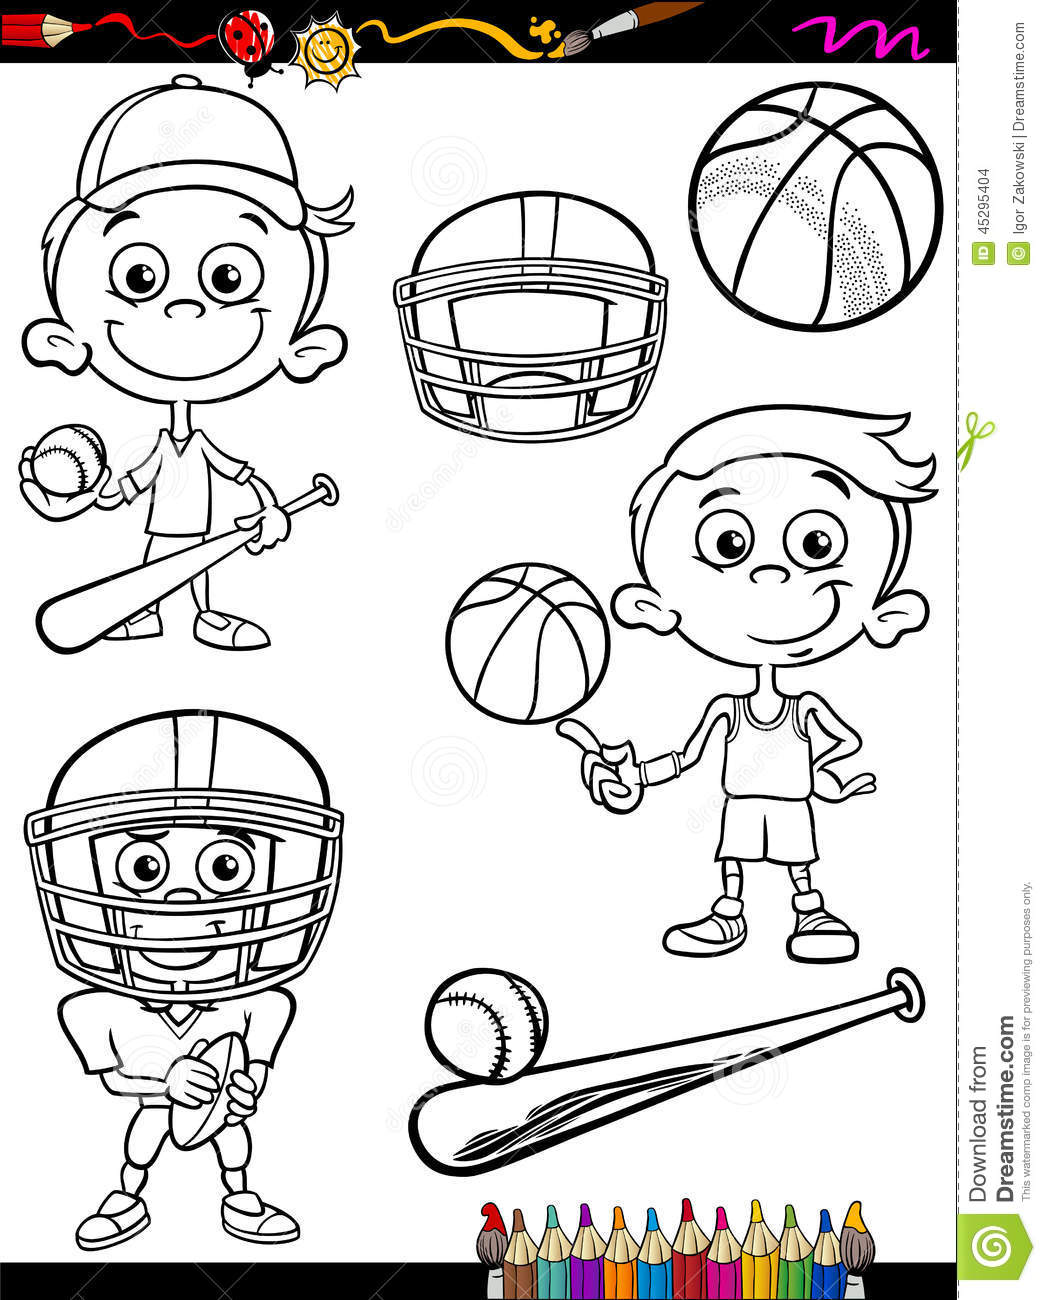 coloring sport balls characters vector illustration 15192982. Black Bedroom Furniture Sets. Home Design Ideas